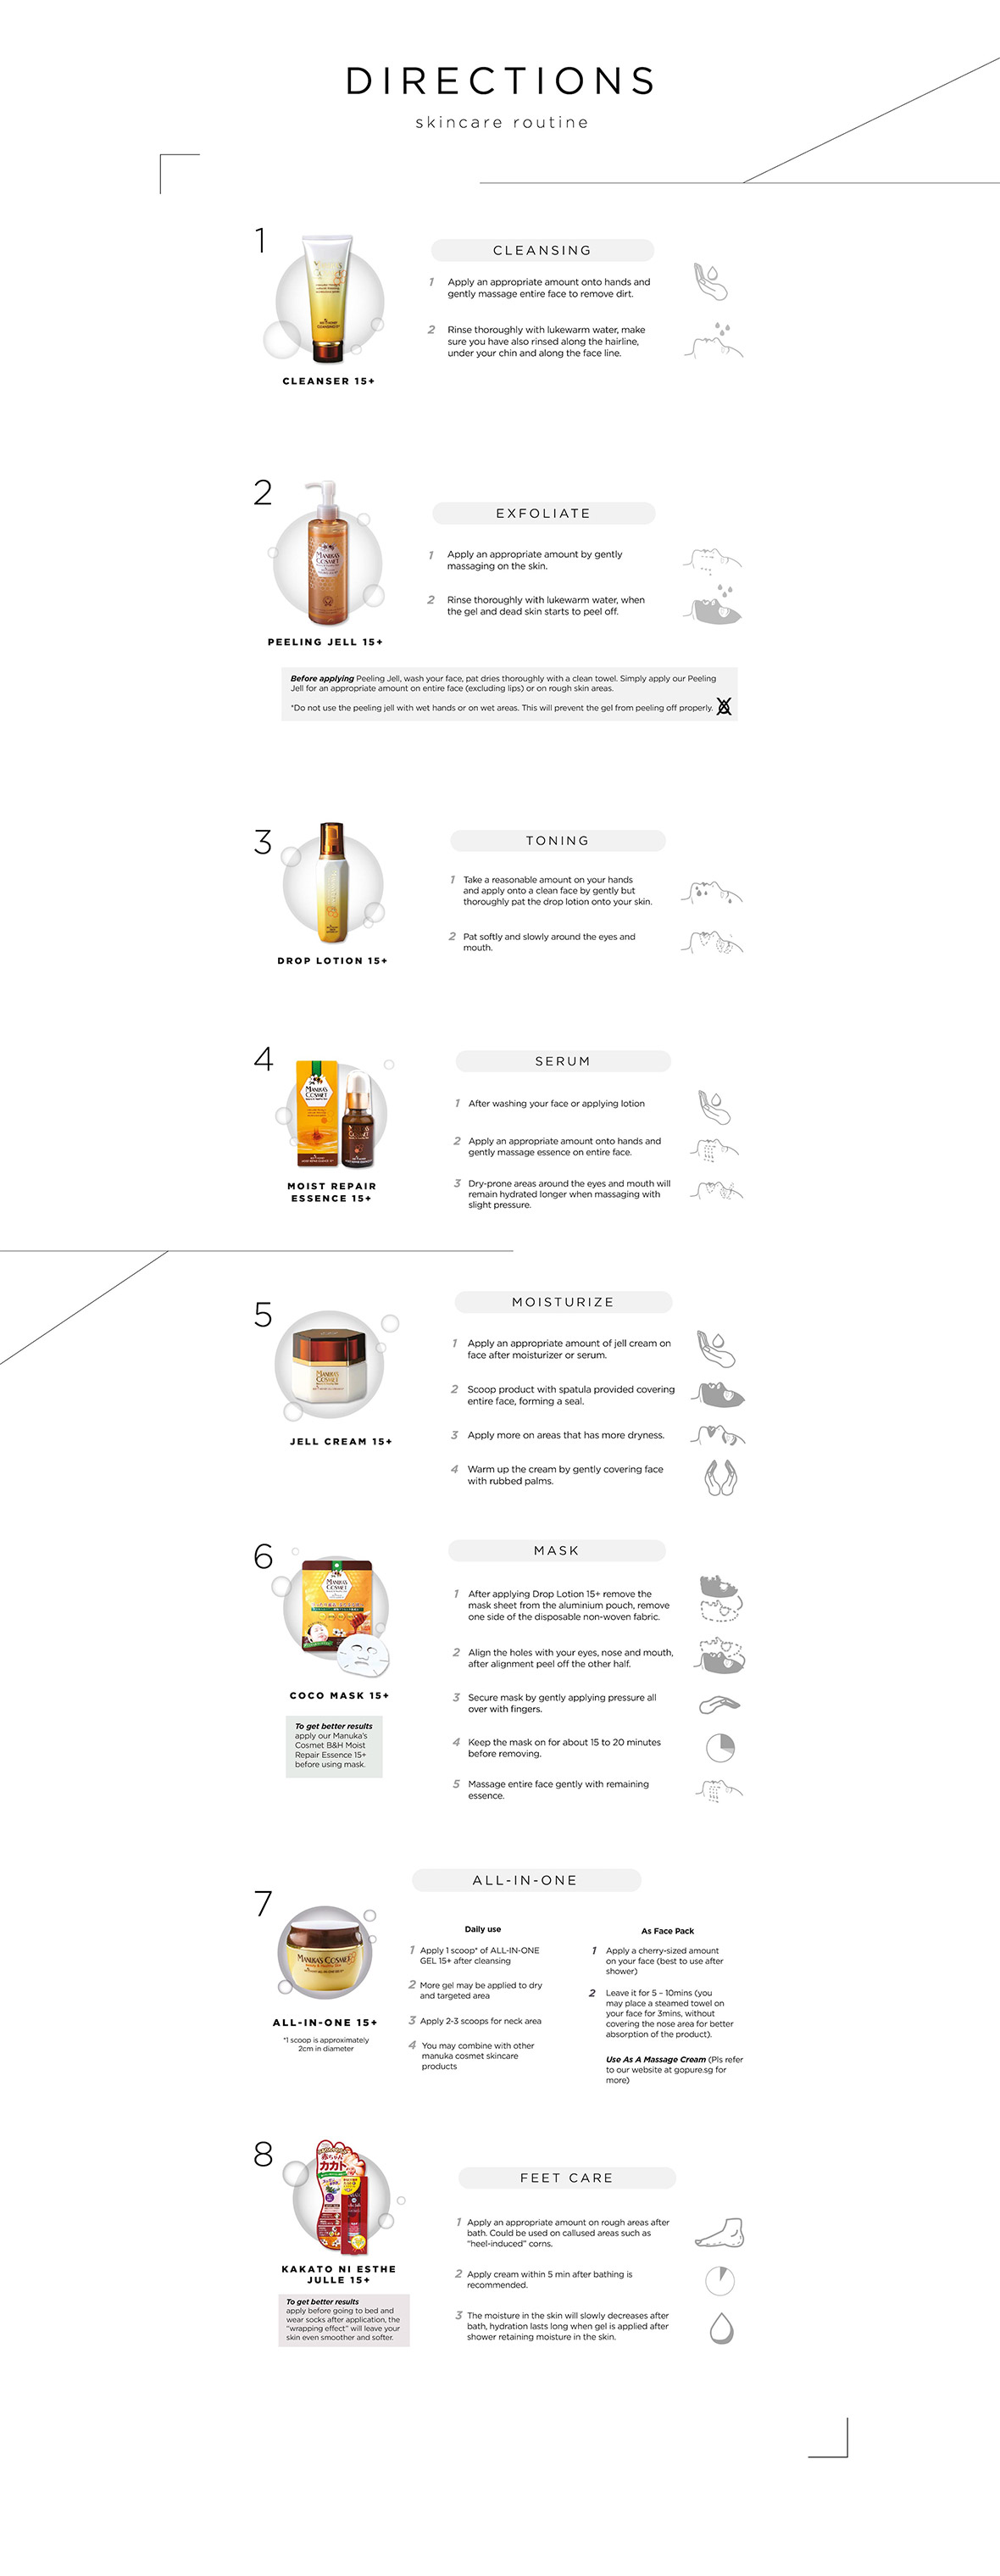 Manuka's Cosmet Manuka Honey Infused Description Guide Manuka honey is extremely precious and contains more powerful antibacterial properties than other types of honey. Manuka is a special type of honey which is derived from Manuka flowers that only exist in New Zeland. Manuka oil, which is extracted from Manuka leaves and bark, and Manuka honey have remarkable antibacterial activities, and the native Maoris have highly valued them as treatments for colds and wounds since ancient times. Today, the medical benefits of Manuka honey are recognized, so Manuka oil and honey are treated as pharmaceutical products in Australia and New Zealand.